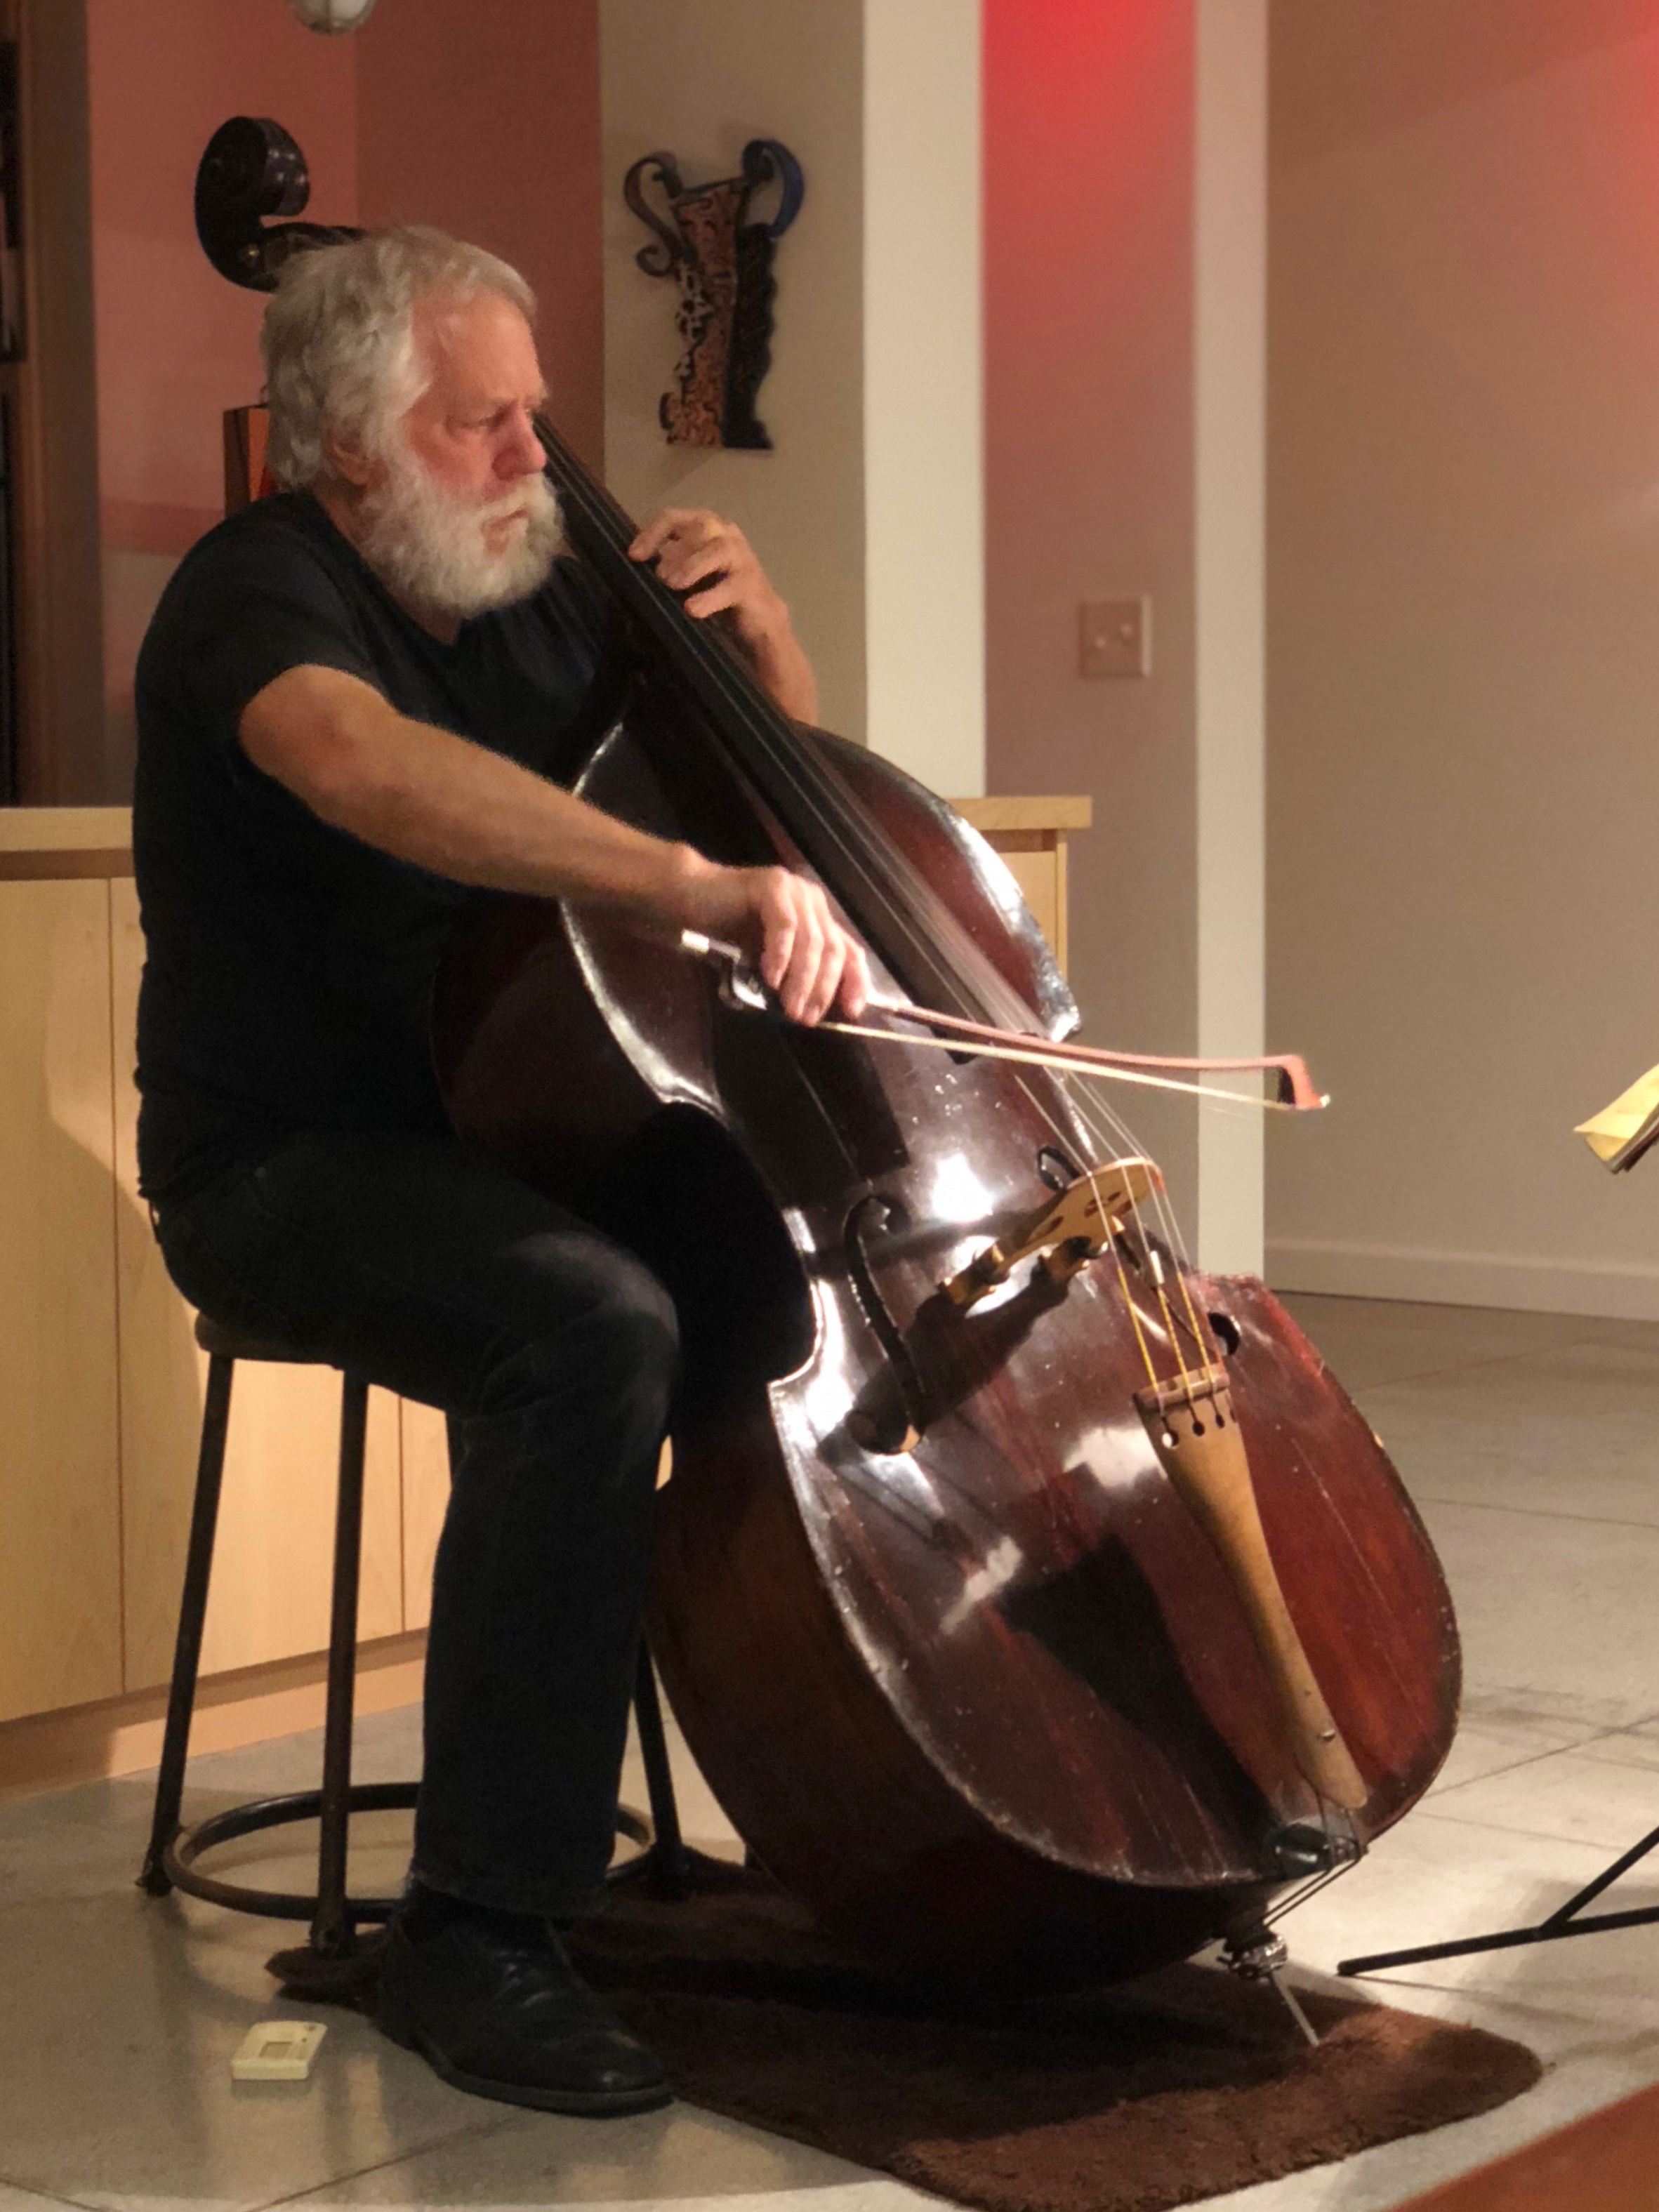 Impromptu double-bass recital